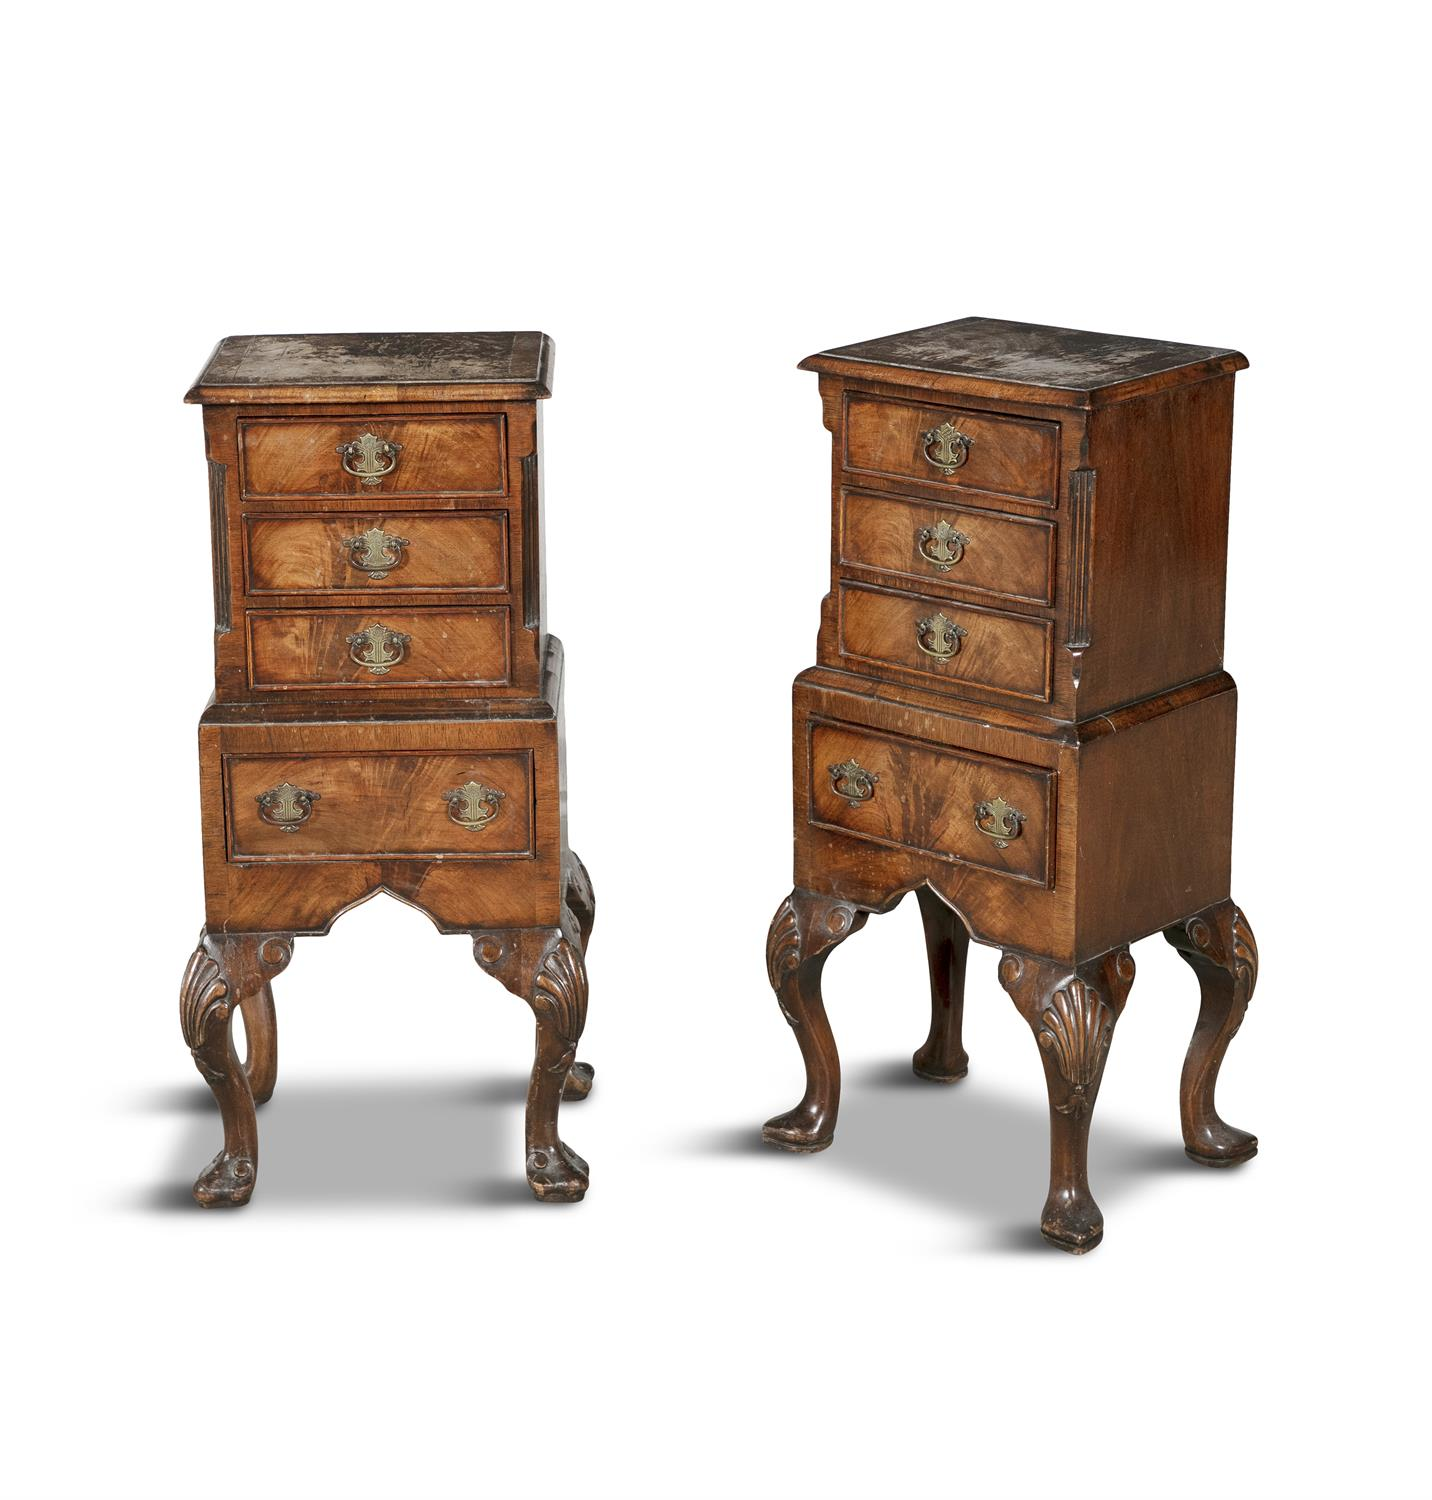 A PAIR OF 19TH CENTURY COMPACT MAHOGANY LOCKERS, in the form of miniature cabinets on stand, - Image 2 of 4